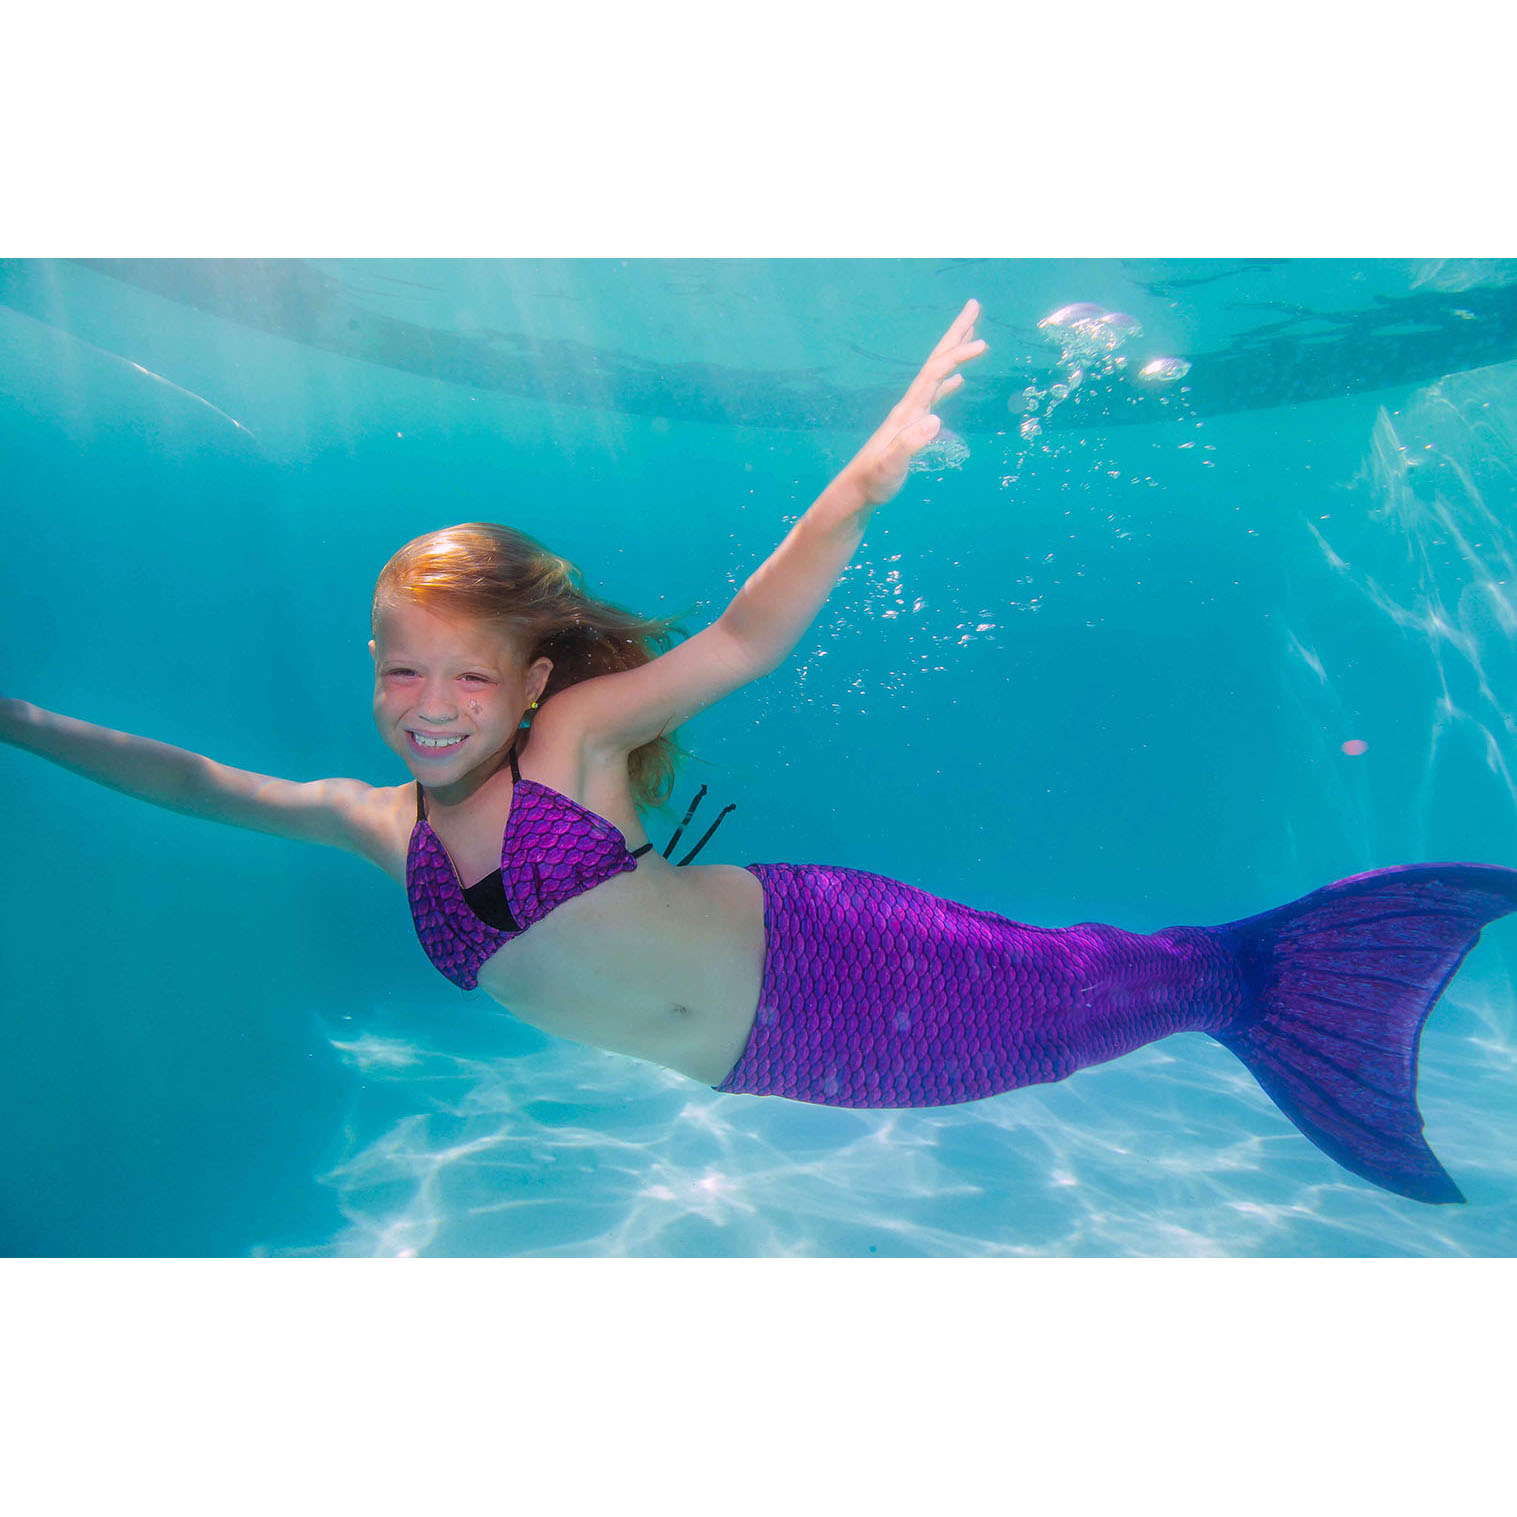 Mermaid Tails By Fin Fun With Monofin For Swimming In Kids And